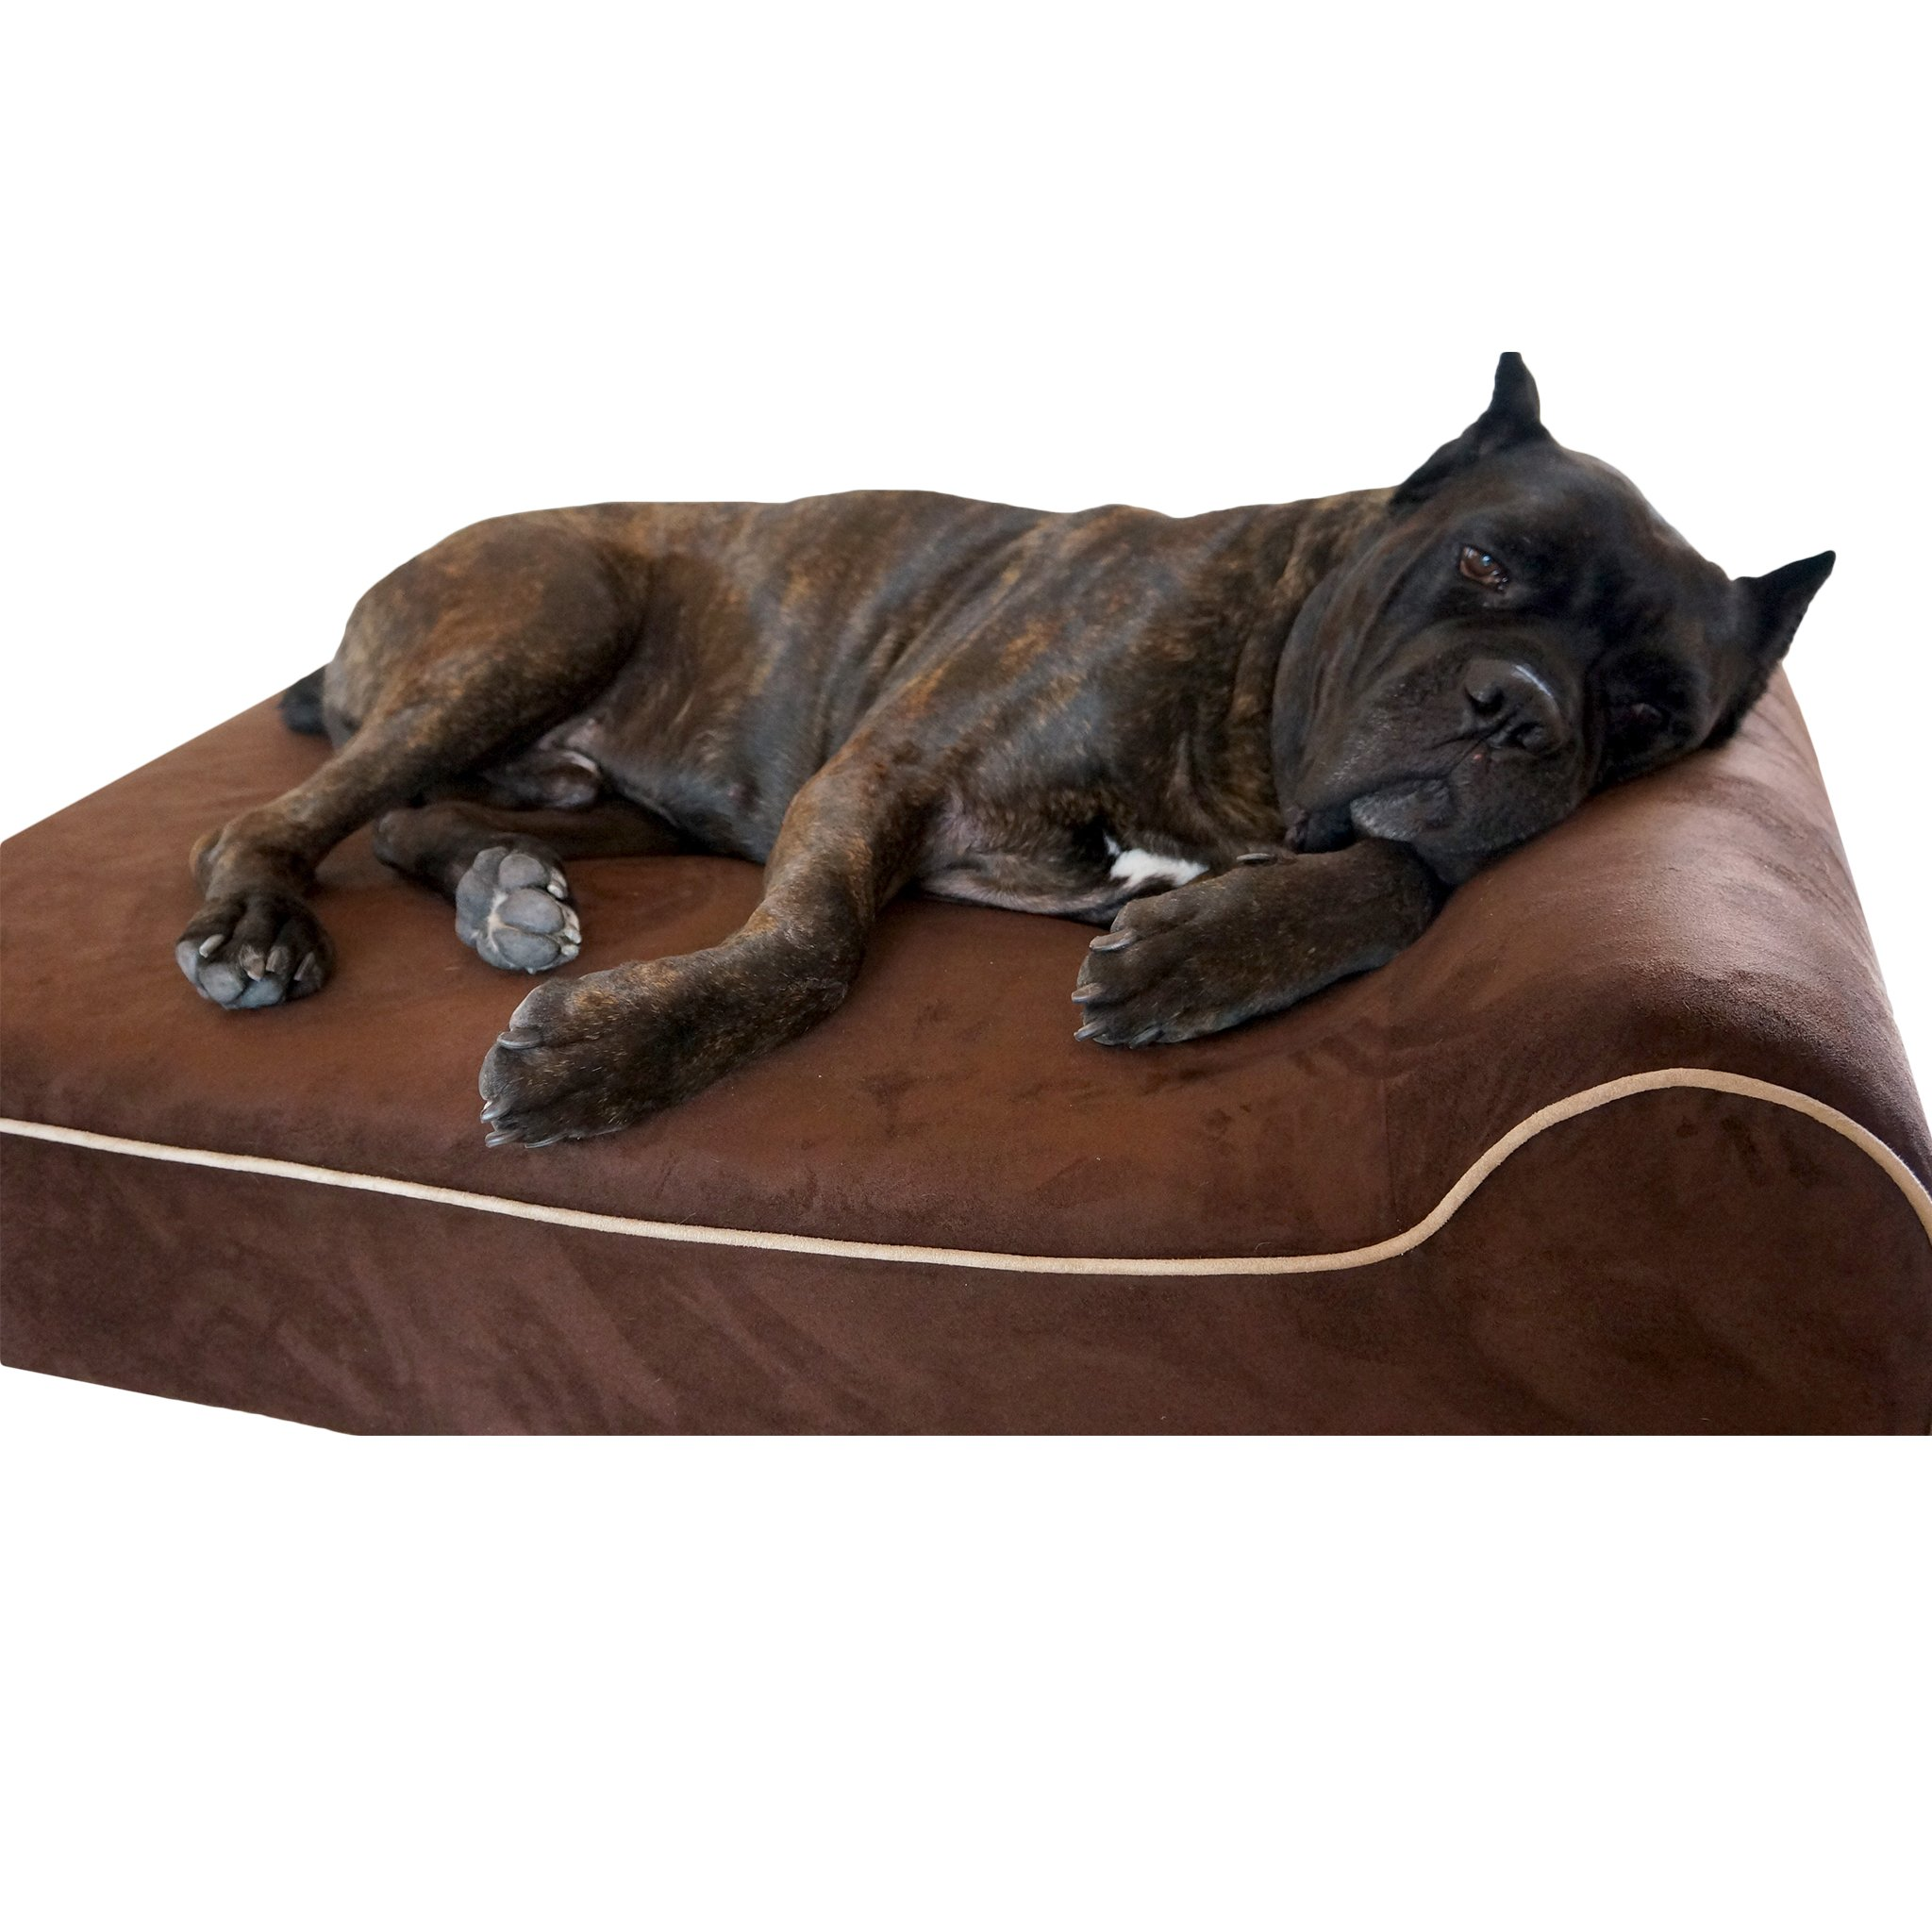 Bully Beds Orthopedic Memory Foam, Waterproof Bolster Beds For Large and Extra Large Dogs (Large, Chocolate)